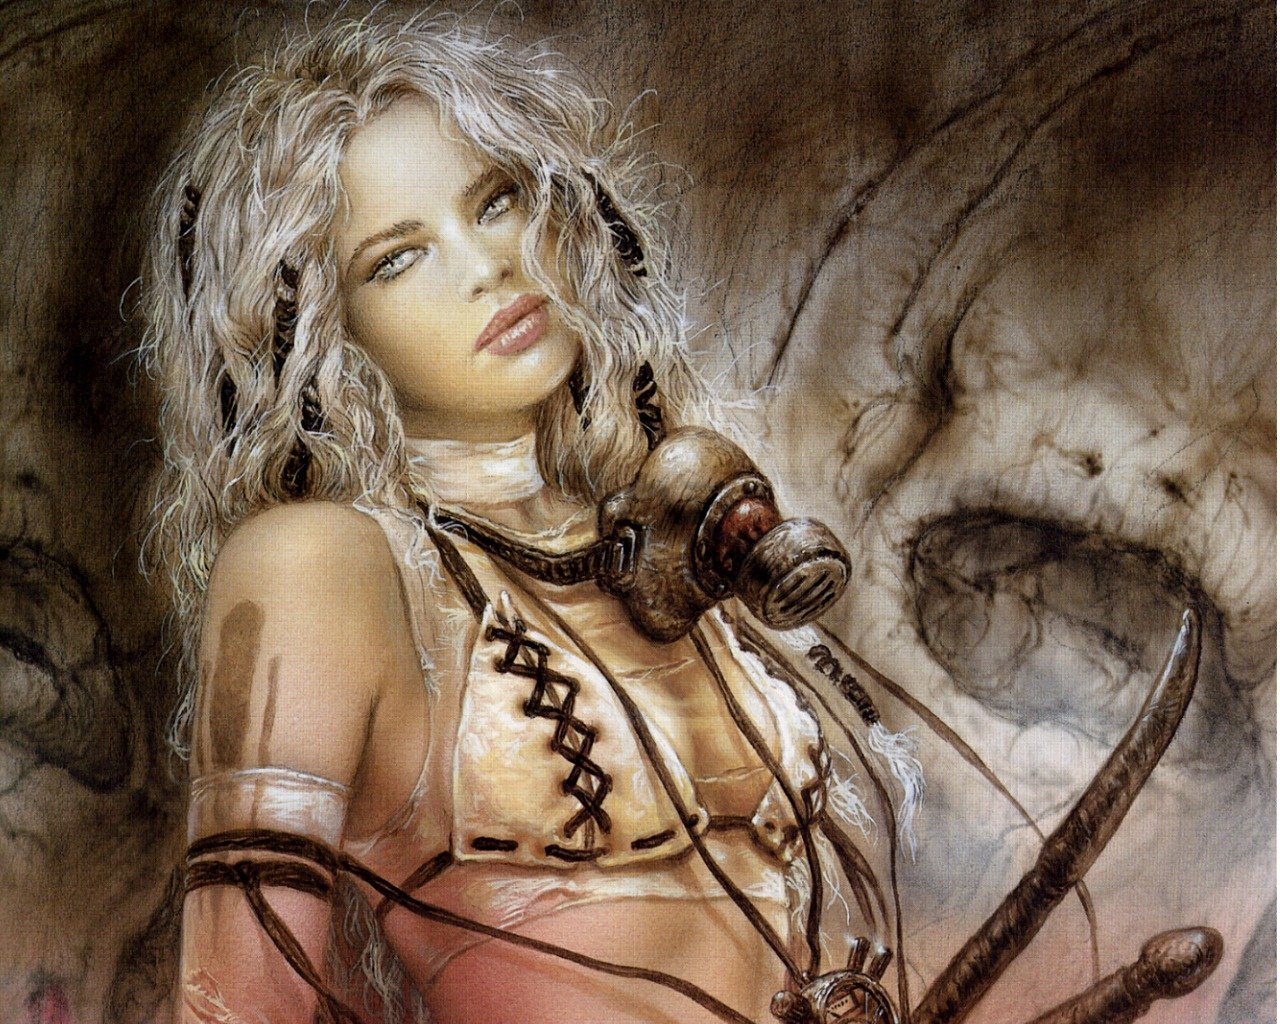 Luis royo images luis royo lady hd wallpaper and background photos luis royo images luis royo lady hd wallpaper and background photos voltagebd Image collections